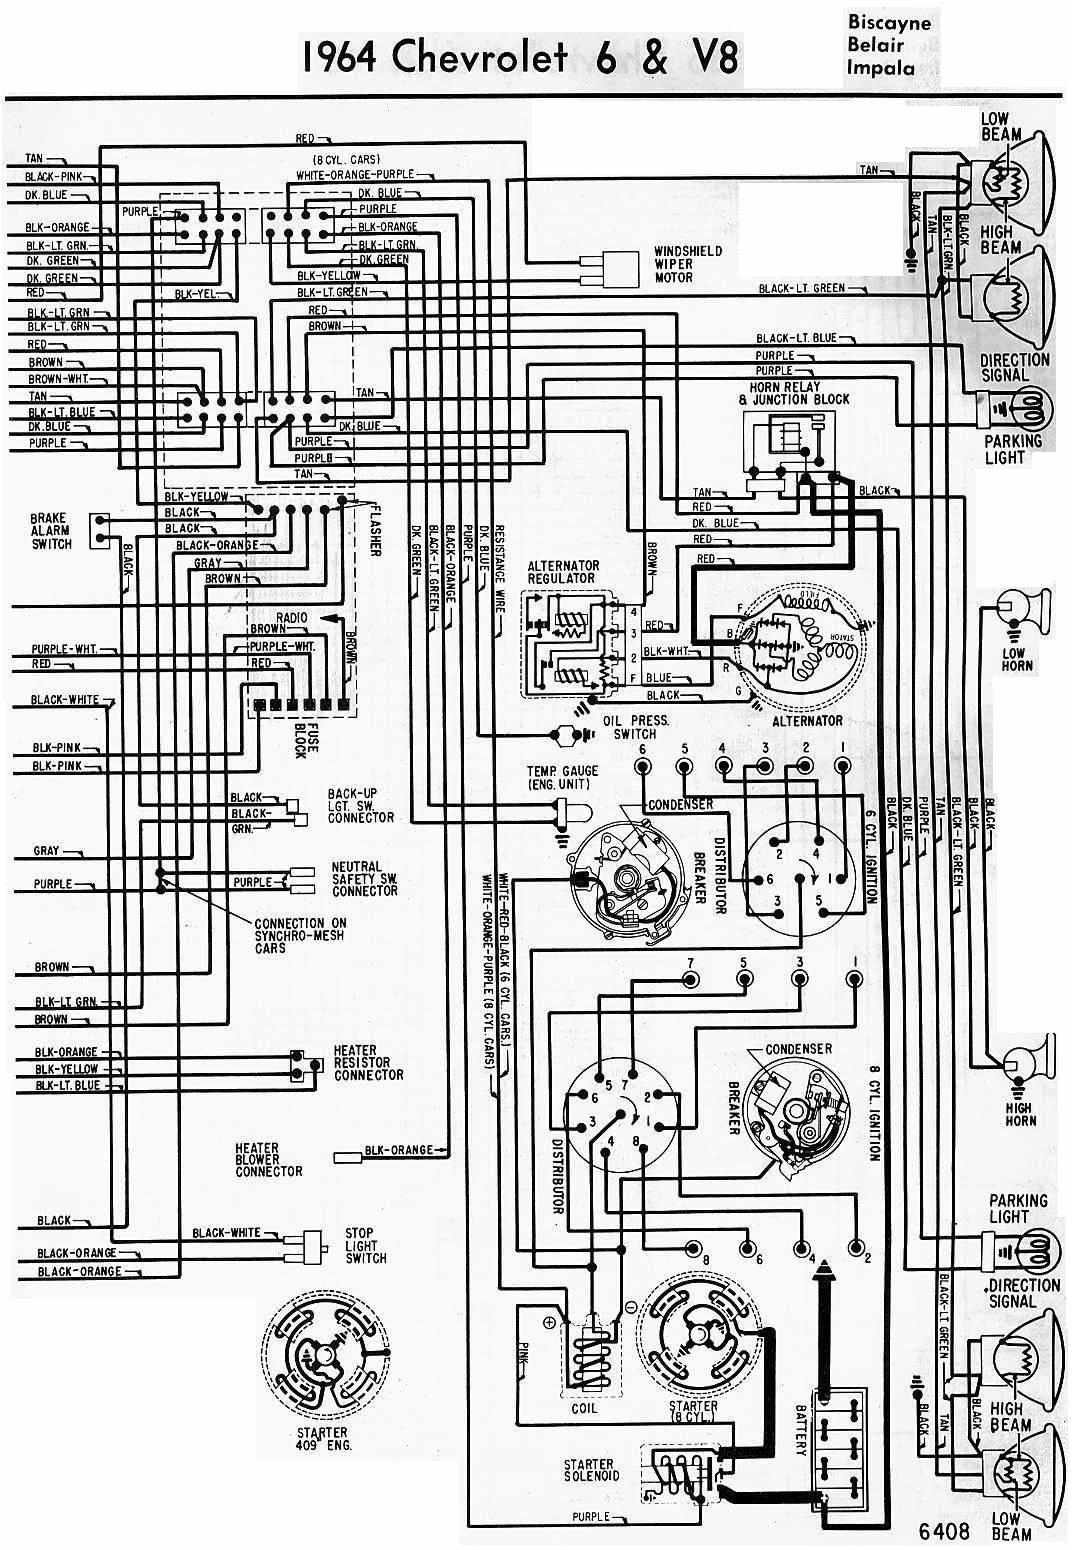 Swell 63 Corvair Wiring Diagram Basic Electronics Wiring Diagram Wiring Cloud Loplapiotaidewilluminateatxorg